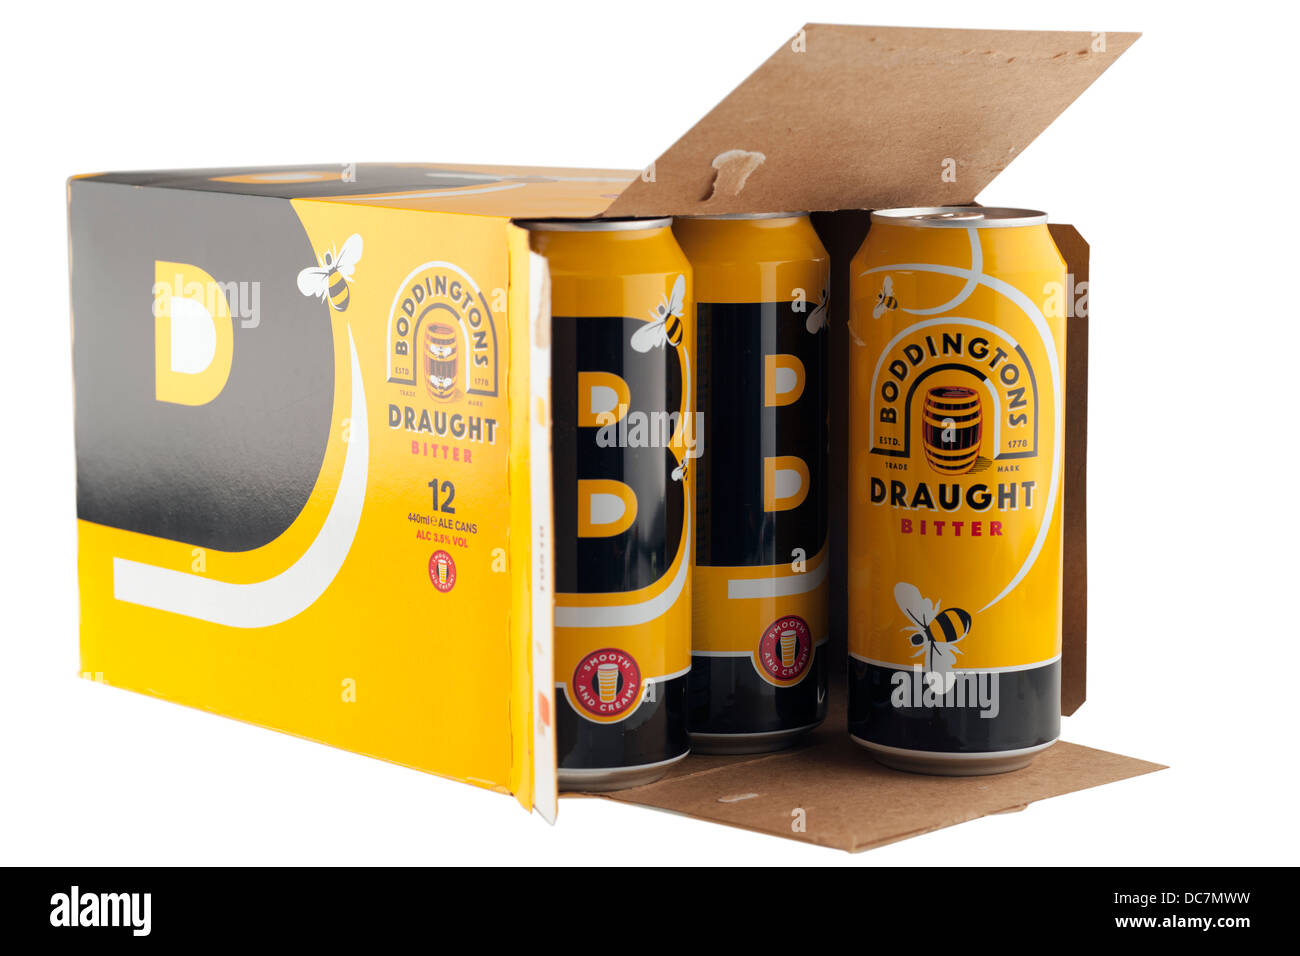 12 can pack of Boddingtons draught bitter ale - Stock Image